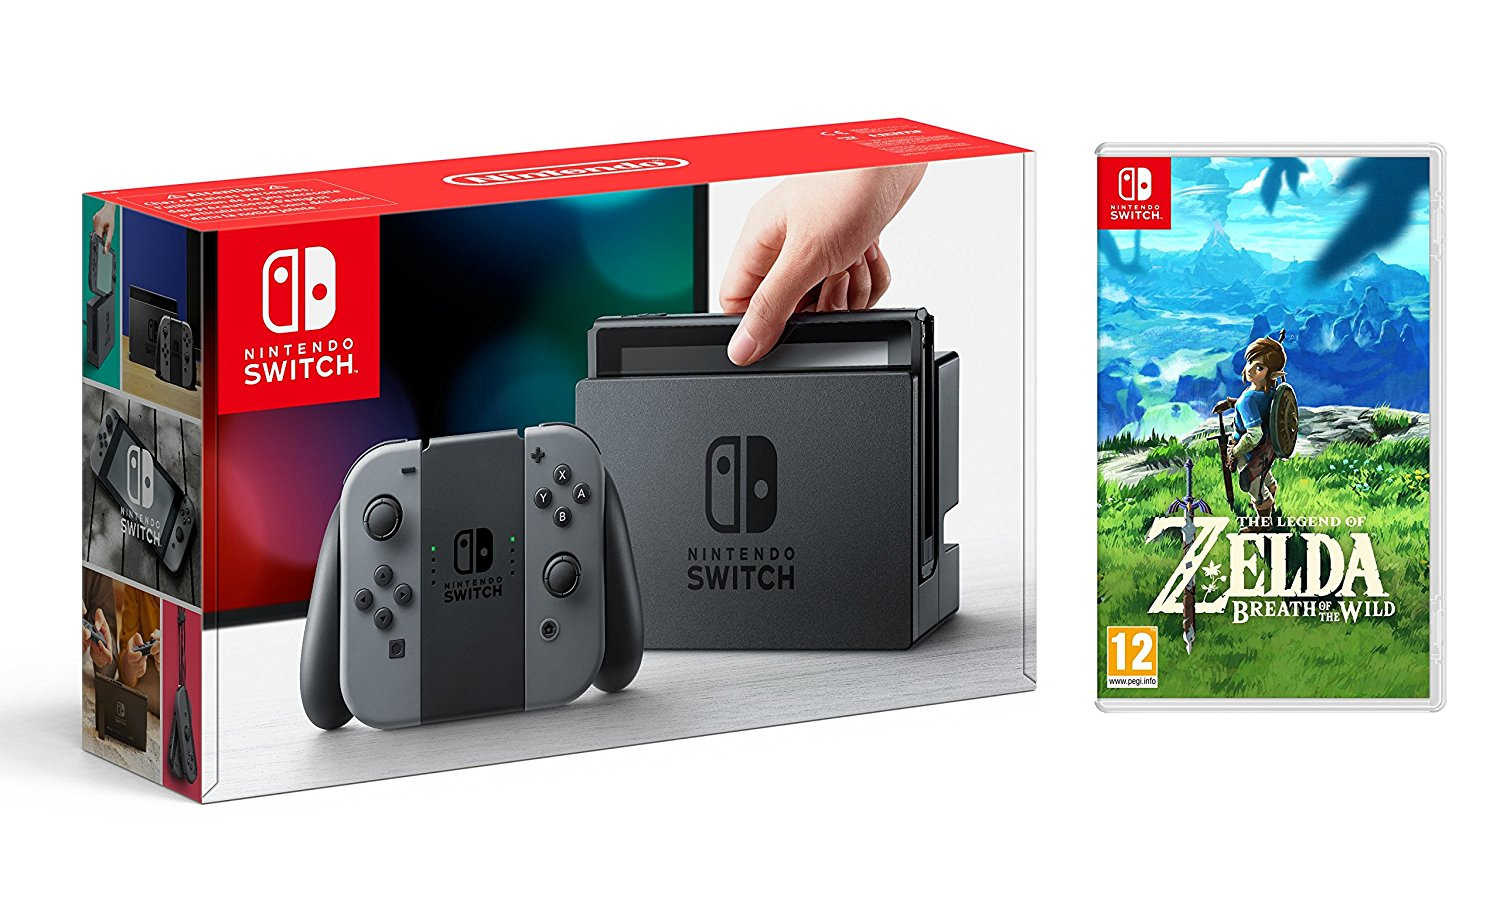 Console Switch et The Legend of Zelda Breath of the Wild - Jeux Précommande